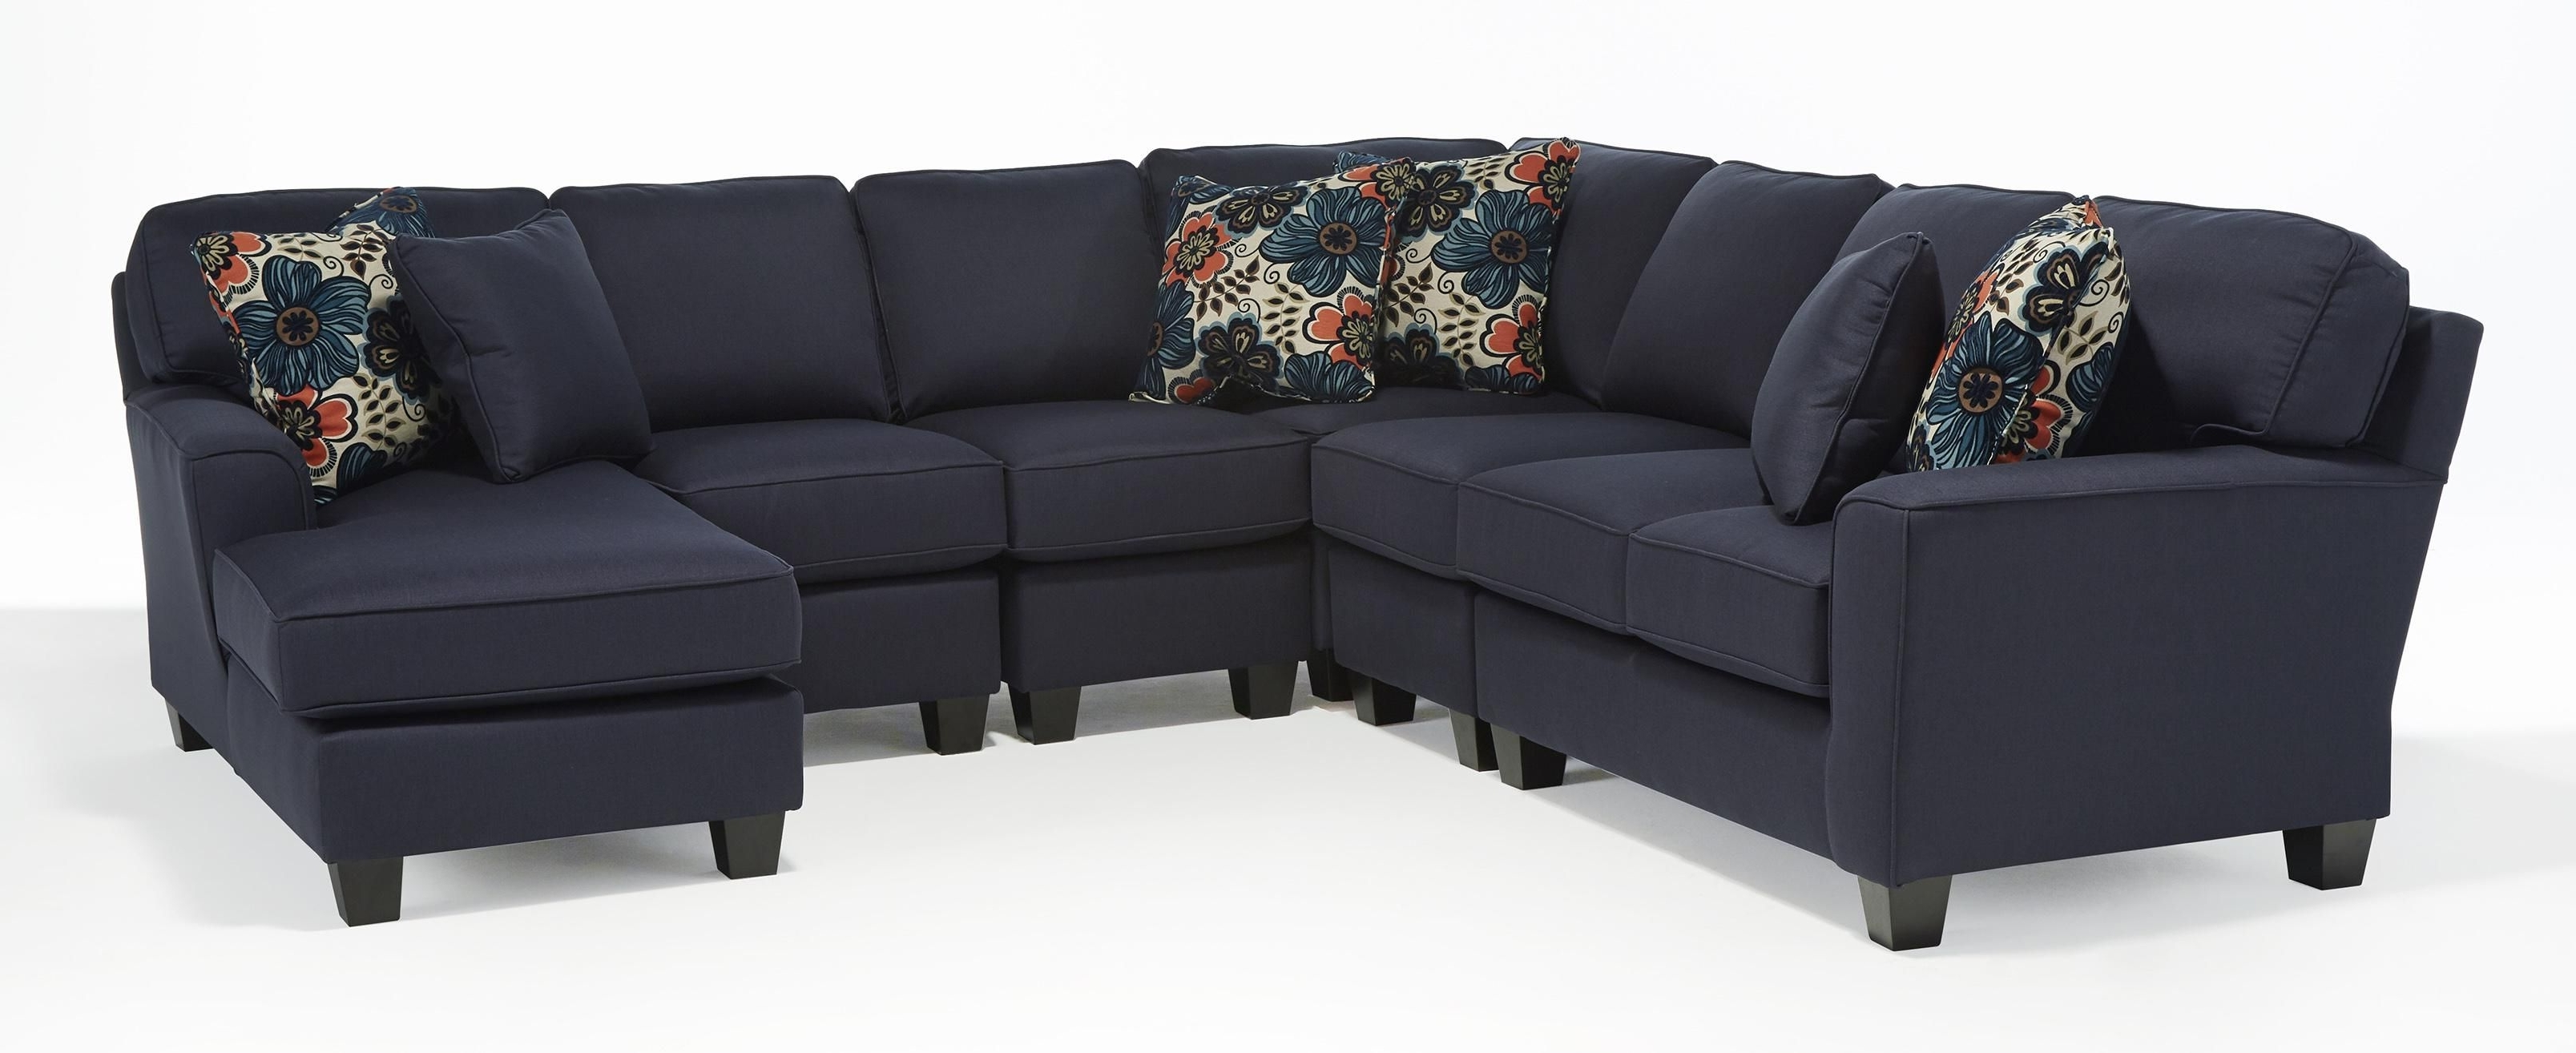 Best Home Furnishings Annabel Five Piece Customizable Sectional Inside Most Recently Released Home Furniture Sectional Sofas (View 3 of 20)